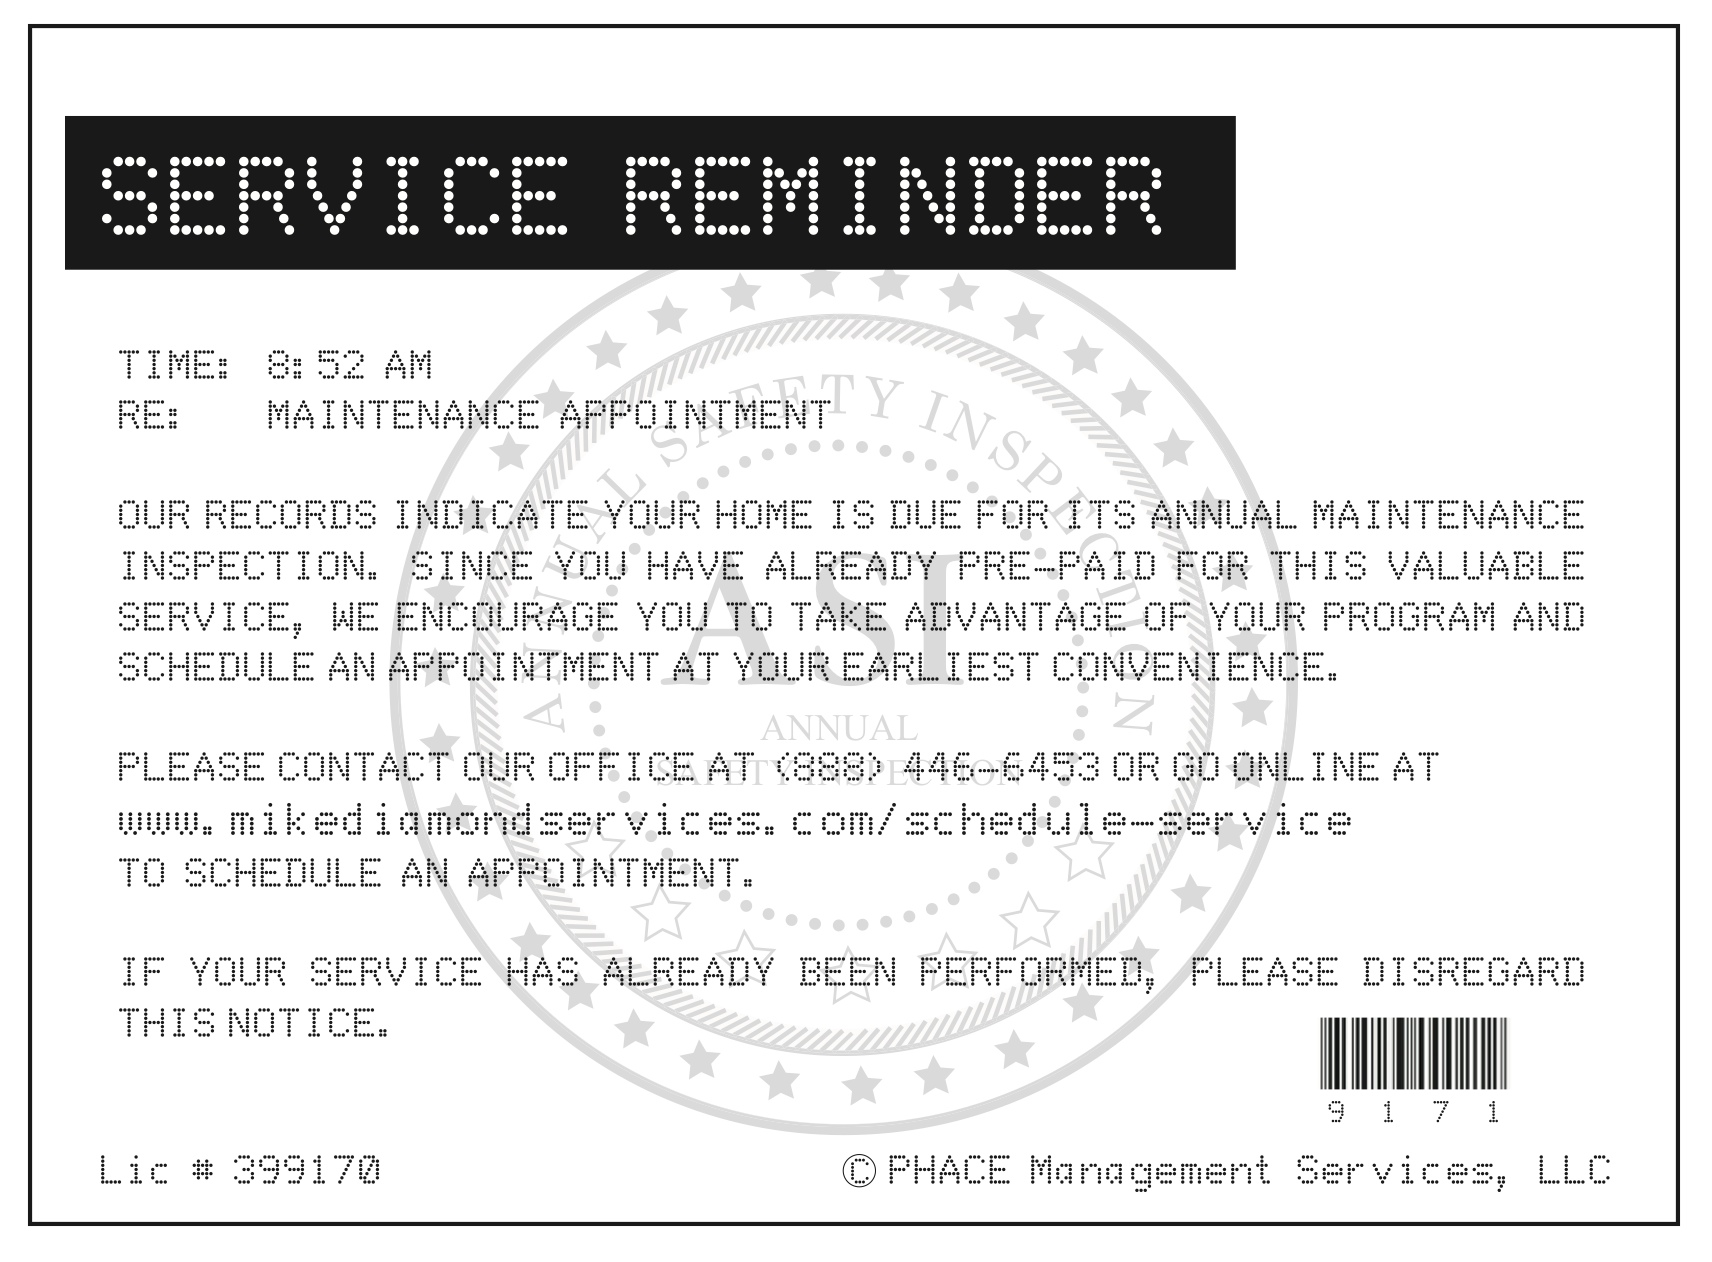 Md Service Reminder Warranty Card 2 Mike Diamond Services